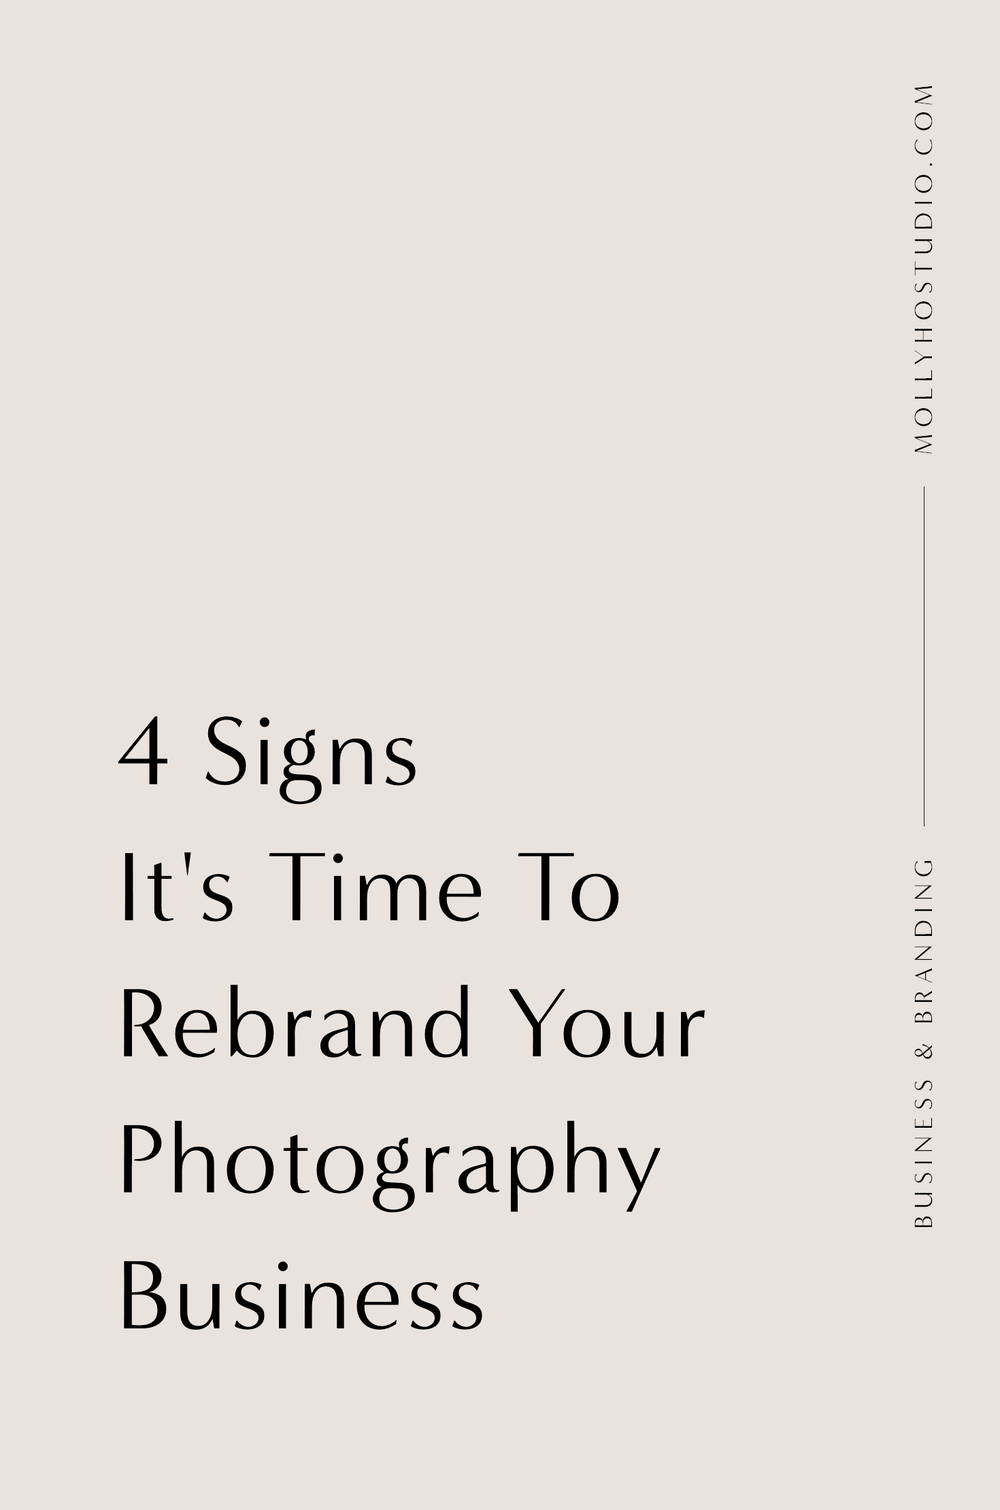 4 Signs It's Time To Rebrand Your Photography Business | When Is It Time To Rebrand Your Photography Business? | Why Rebrand Your Business | How To Grow Your Photography Business | Brand Identity Design | How To Rebrand Your Photography Business | Branding and Business Tips for Photographers | Female Creative Entrepreneurs and Small Business Owners | Molly Ho Studio